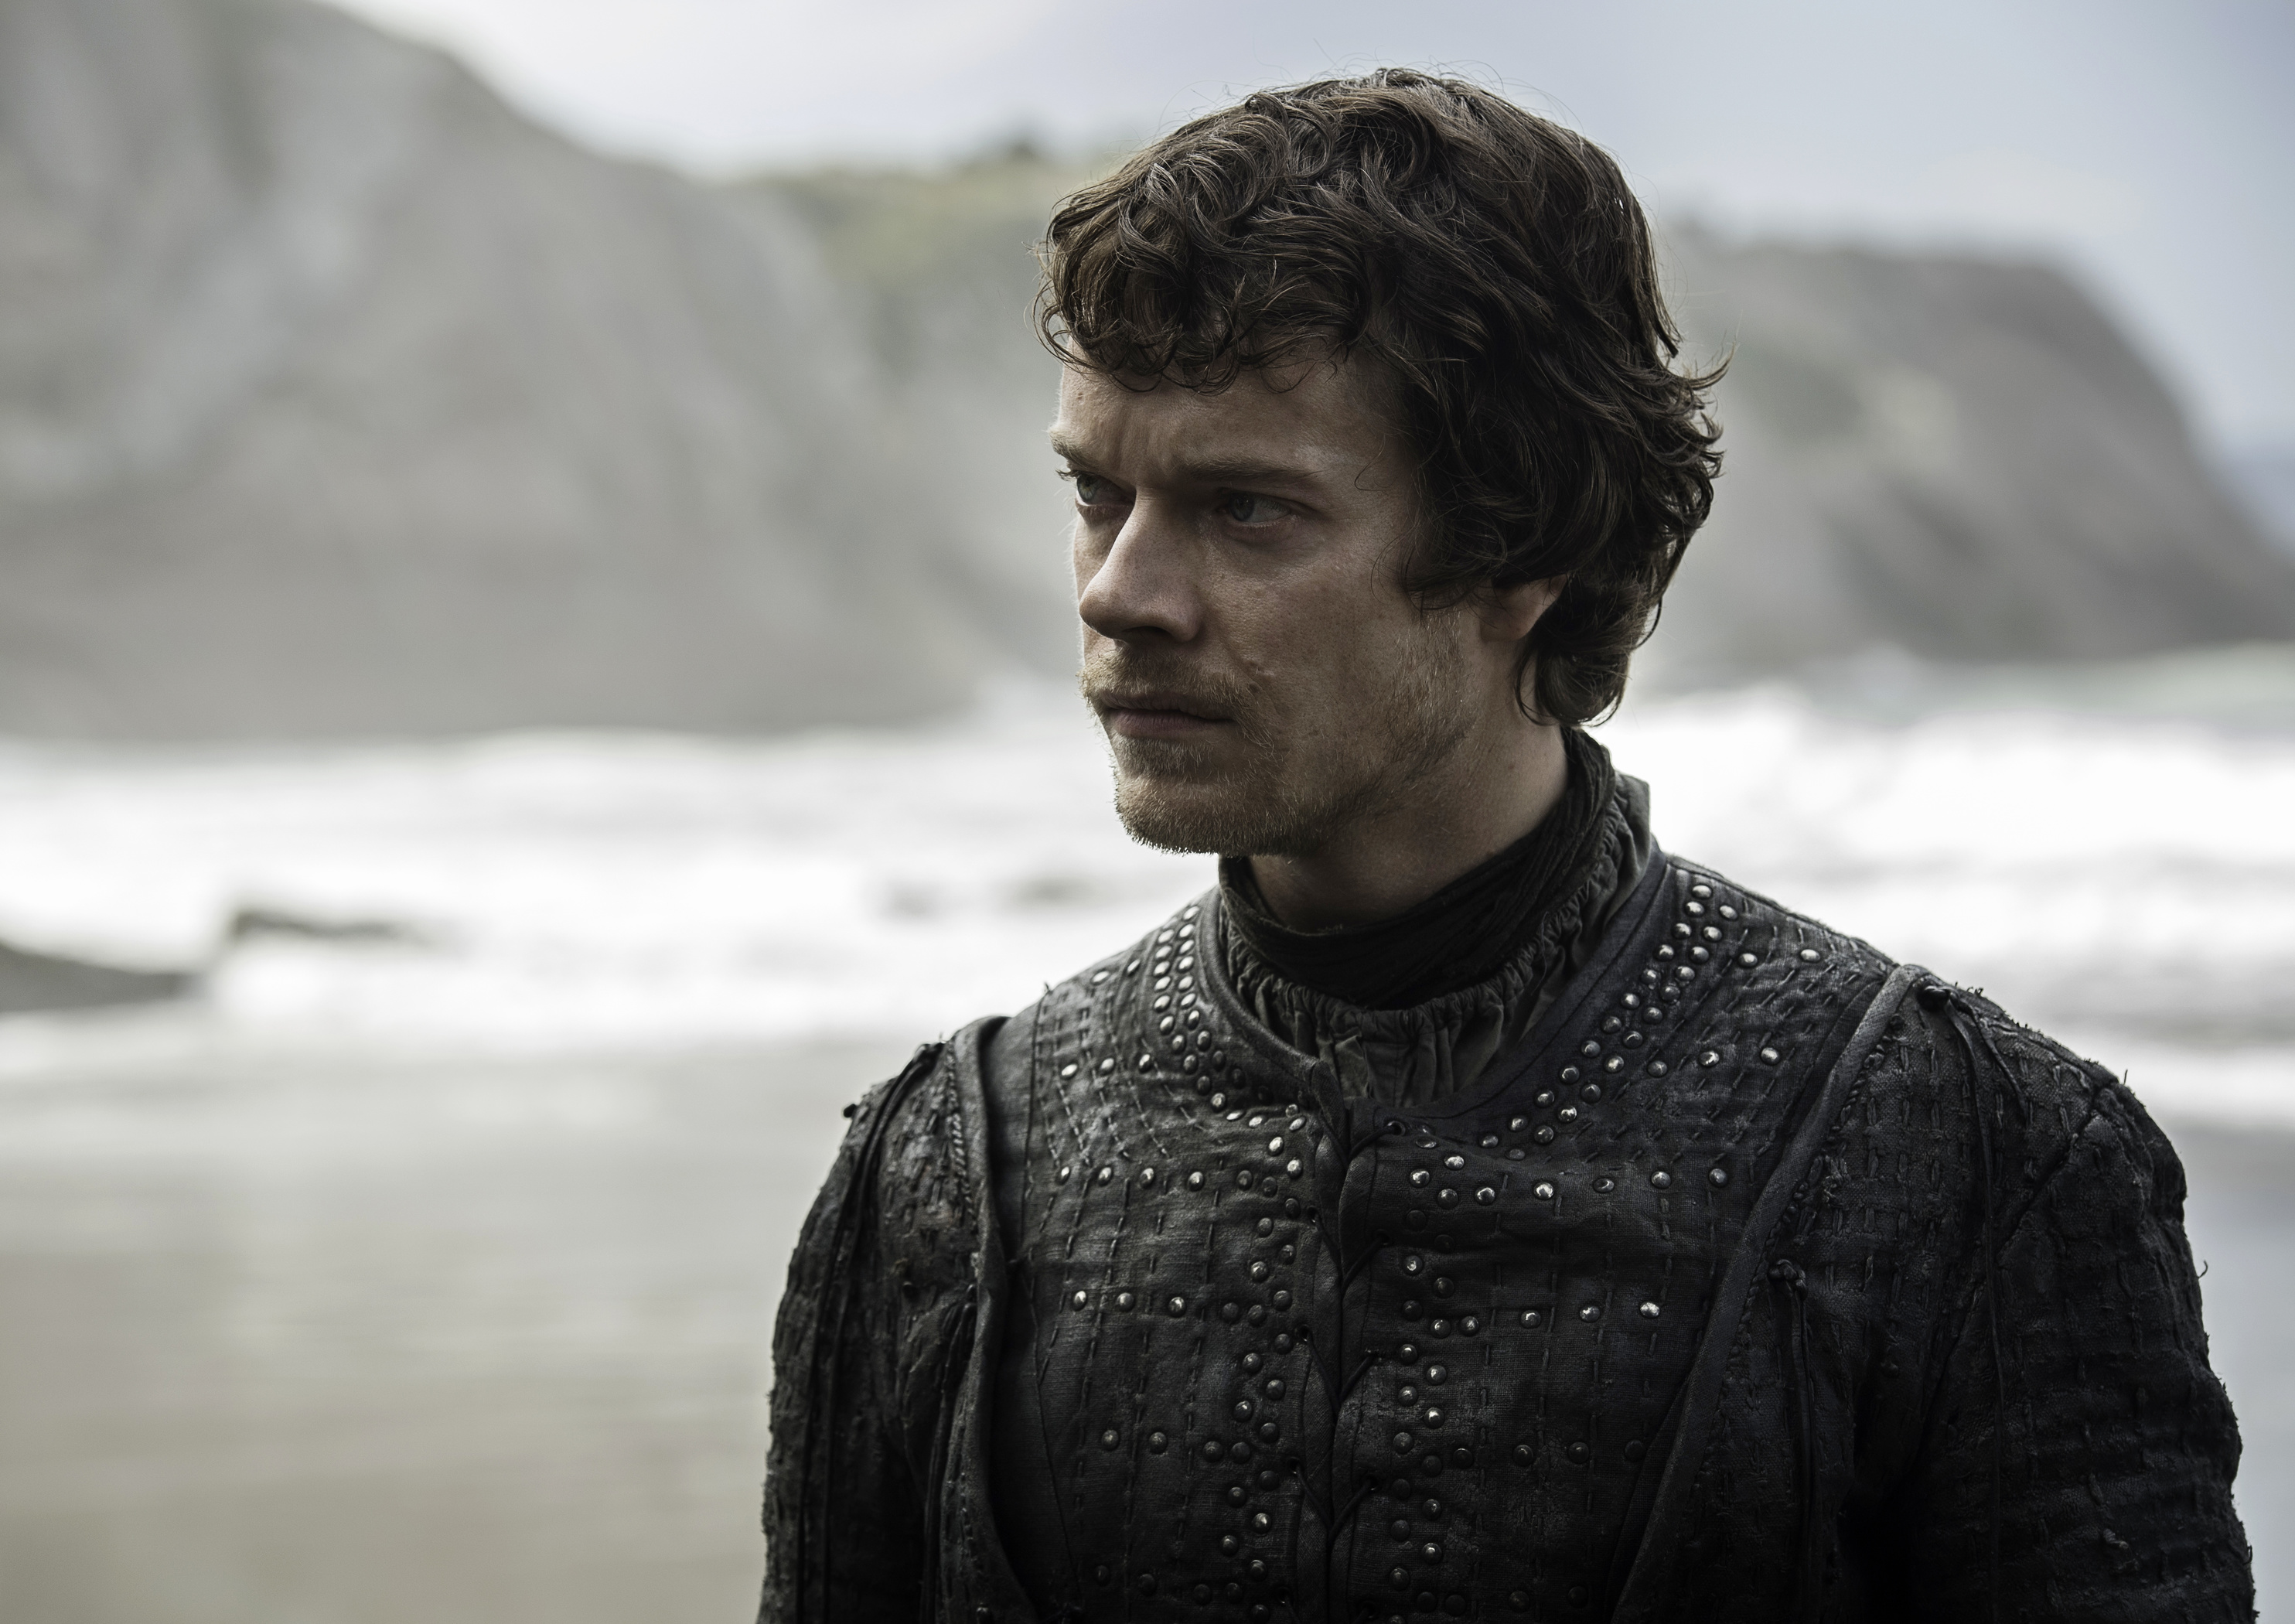 Game Of Thrones Season 7: Littlefinger Plots And Theon Makes Landfall In Latest Action Shots